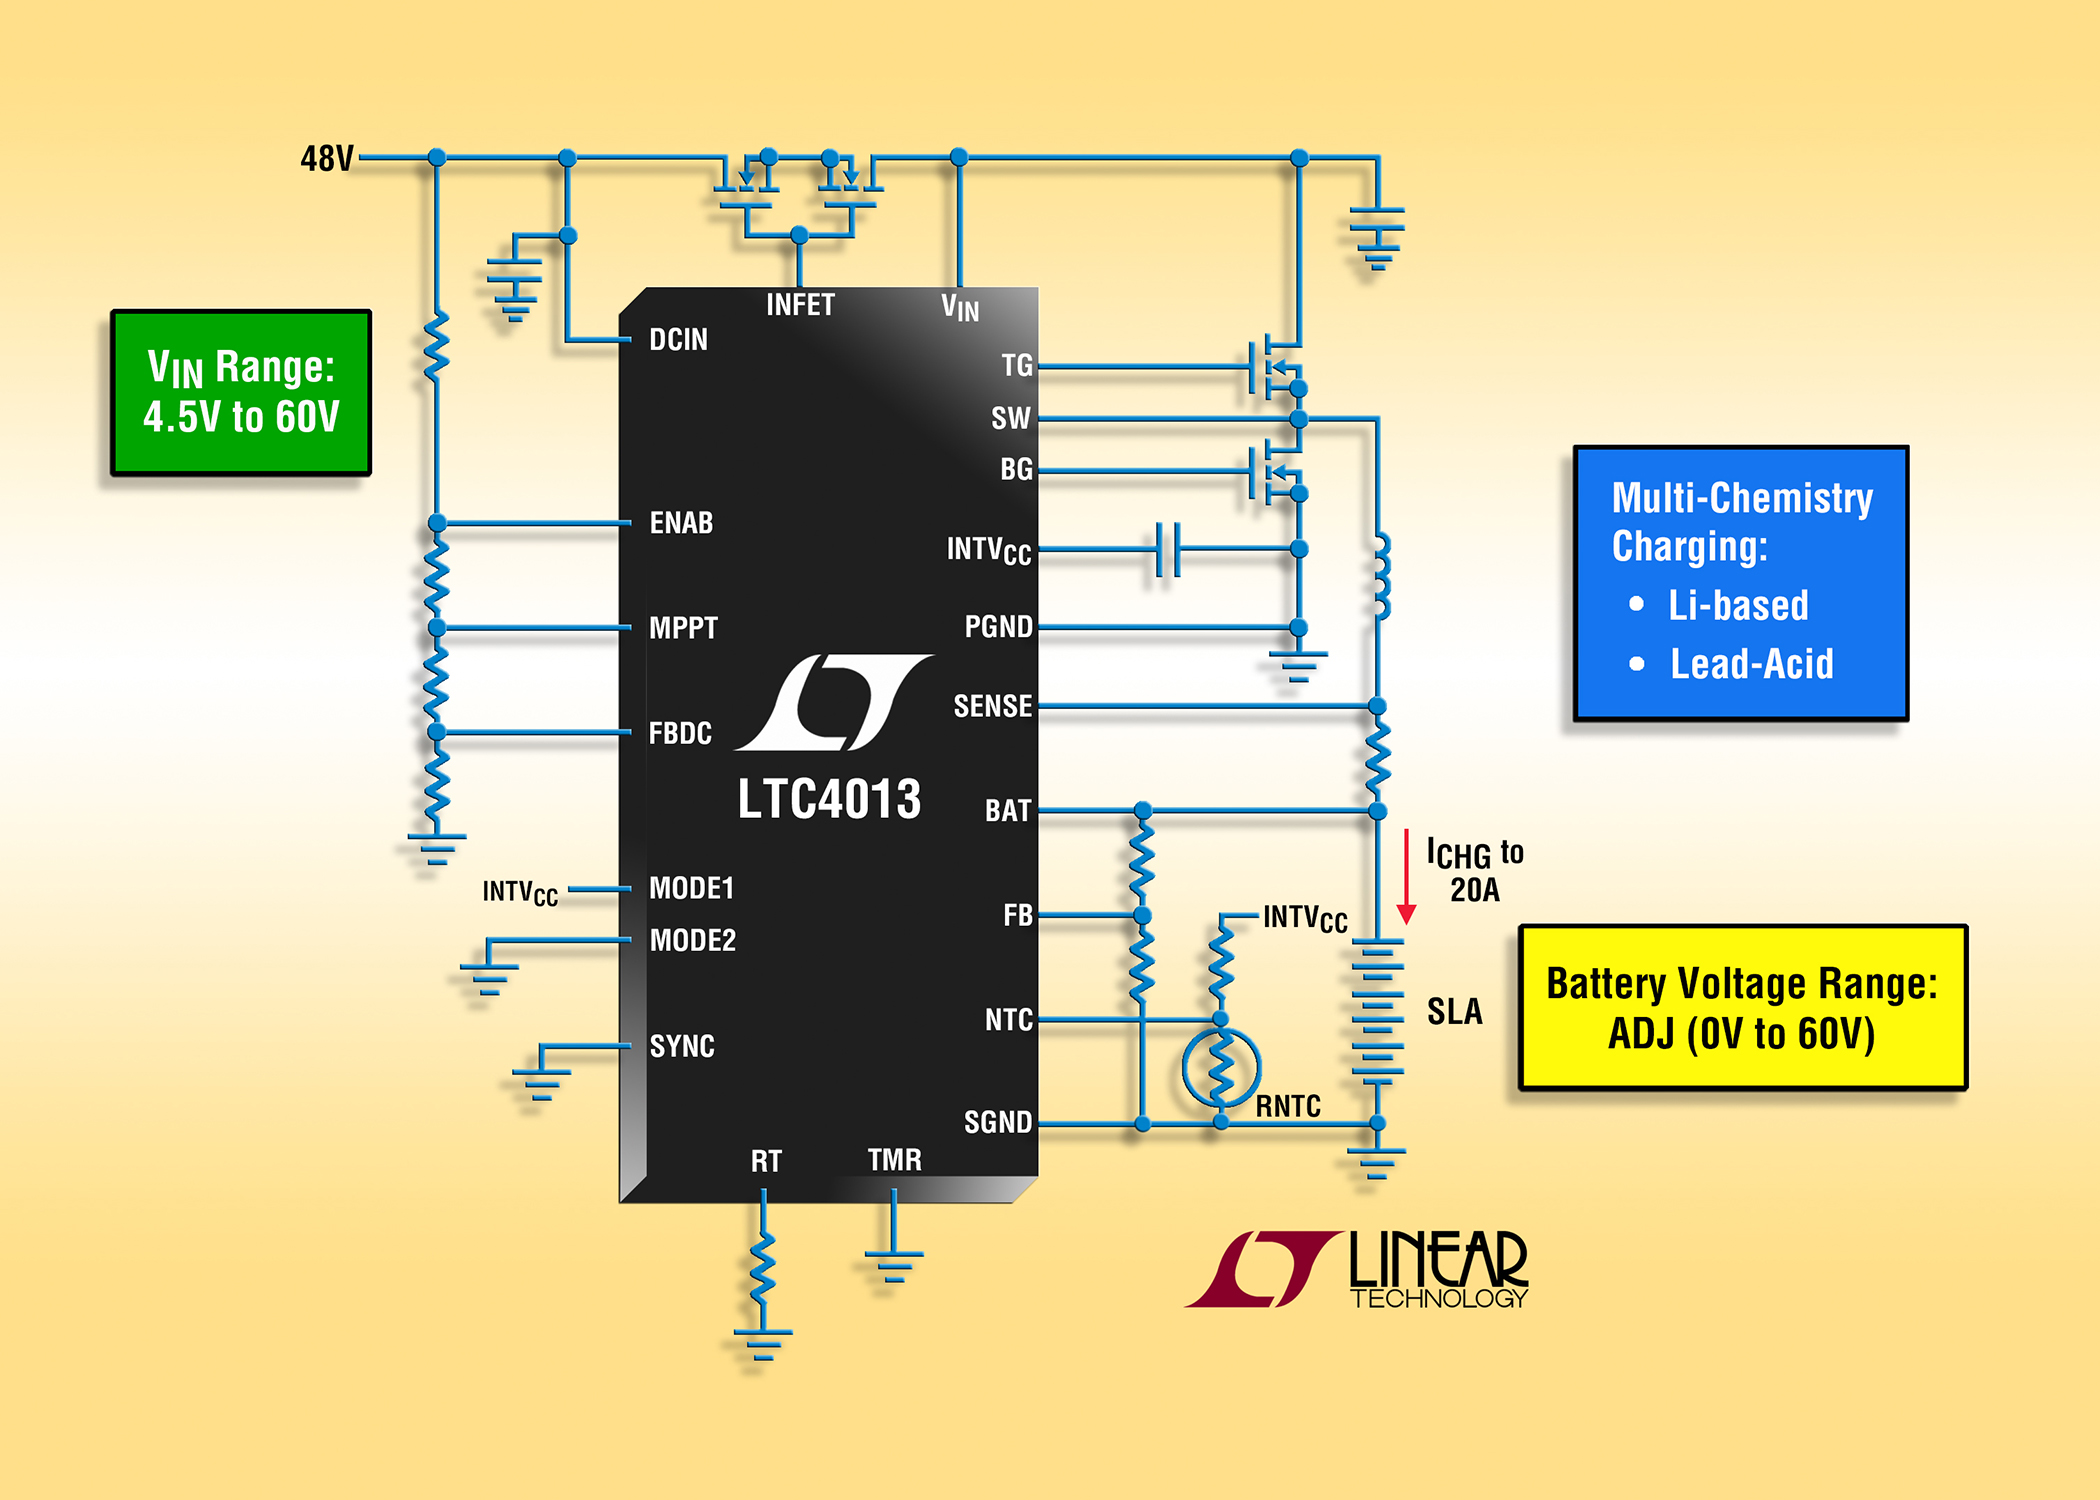 hight resolution of 60v synchronous buck battery charger includes lead acid li ion charge algorithms for up to 20a charge current